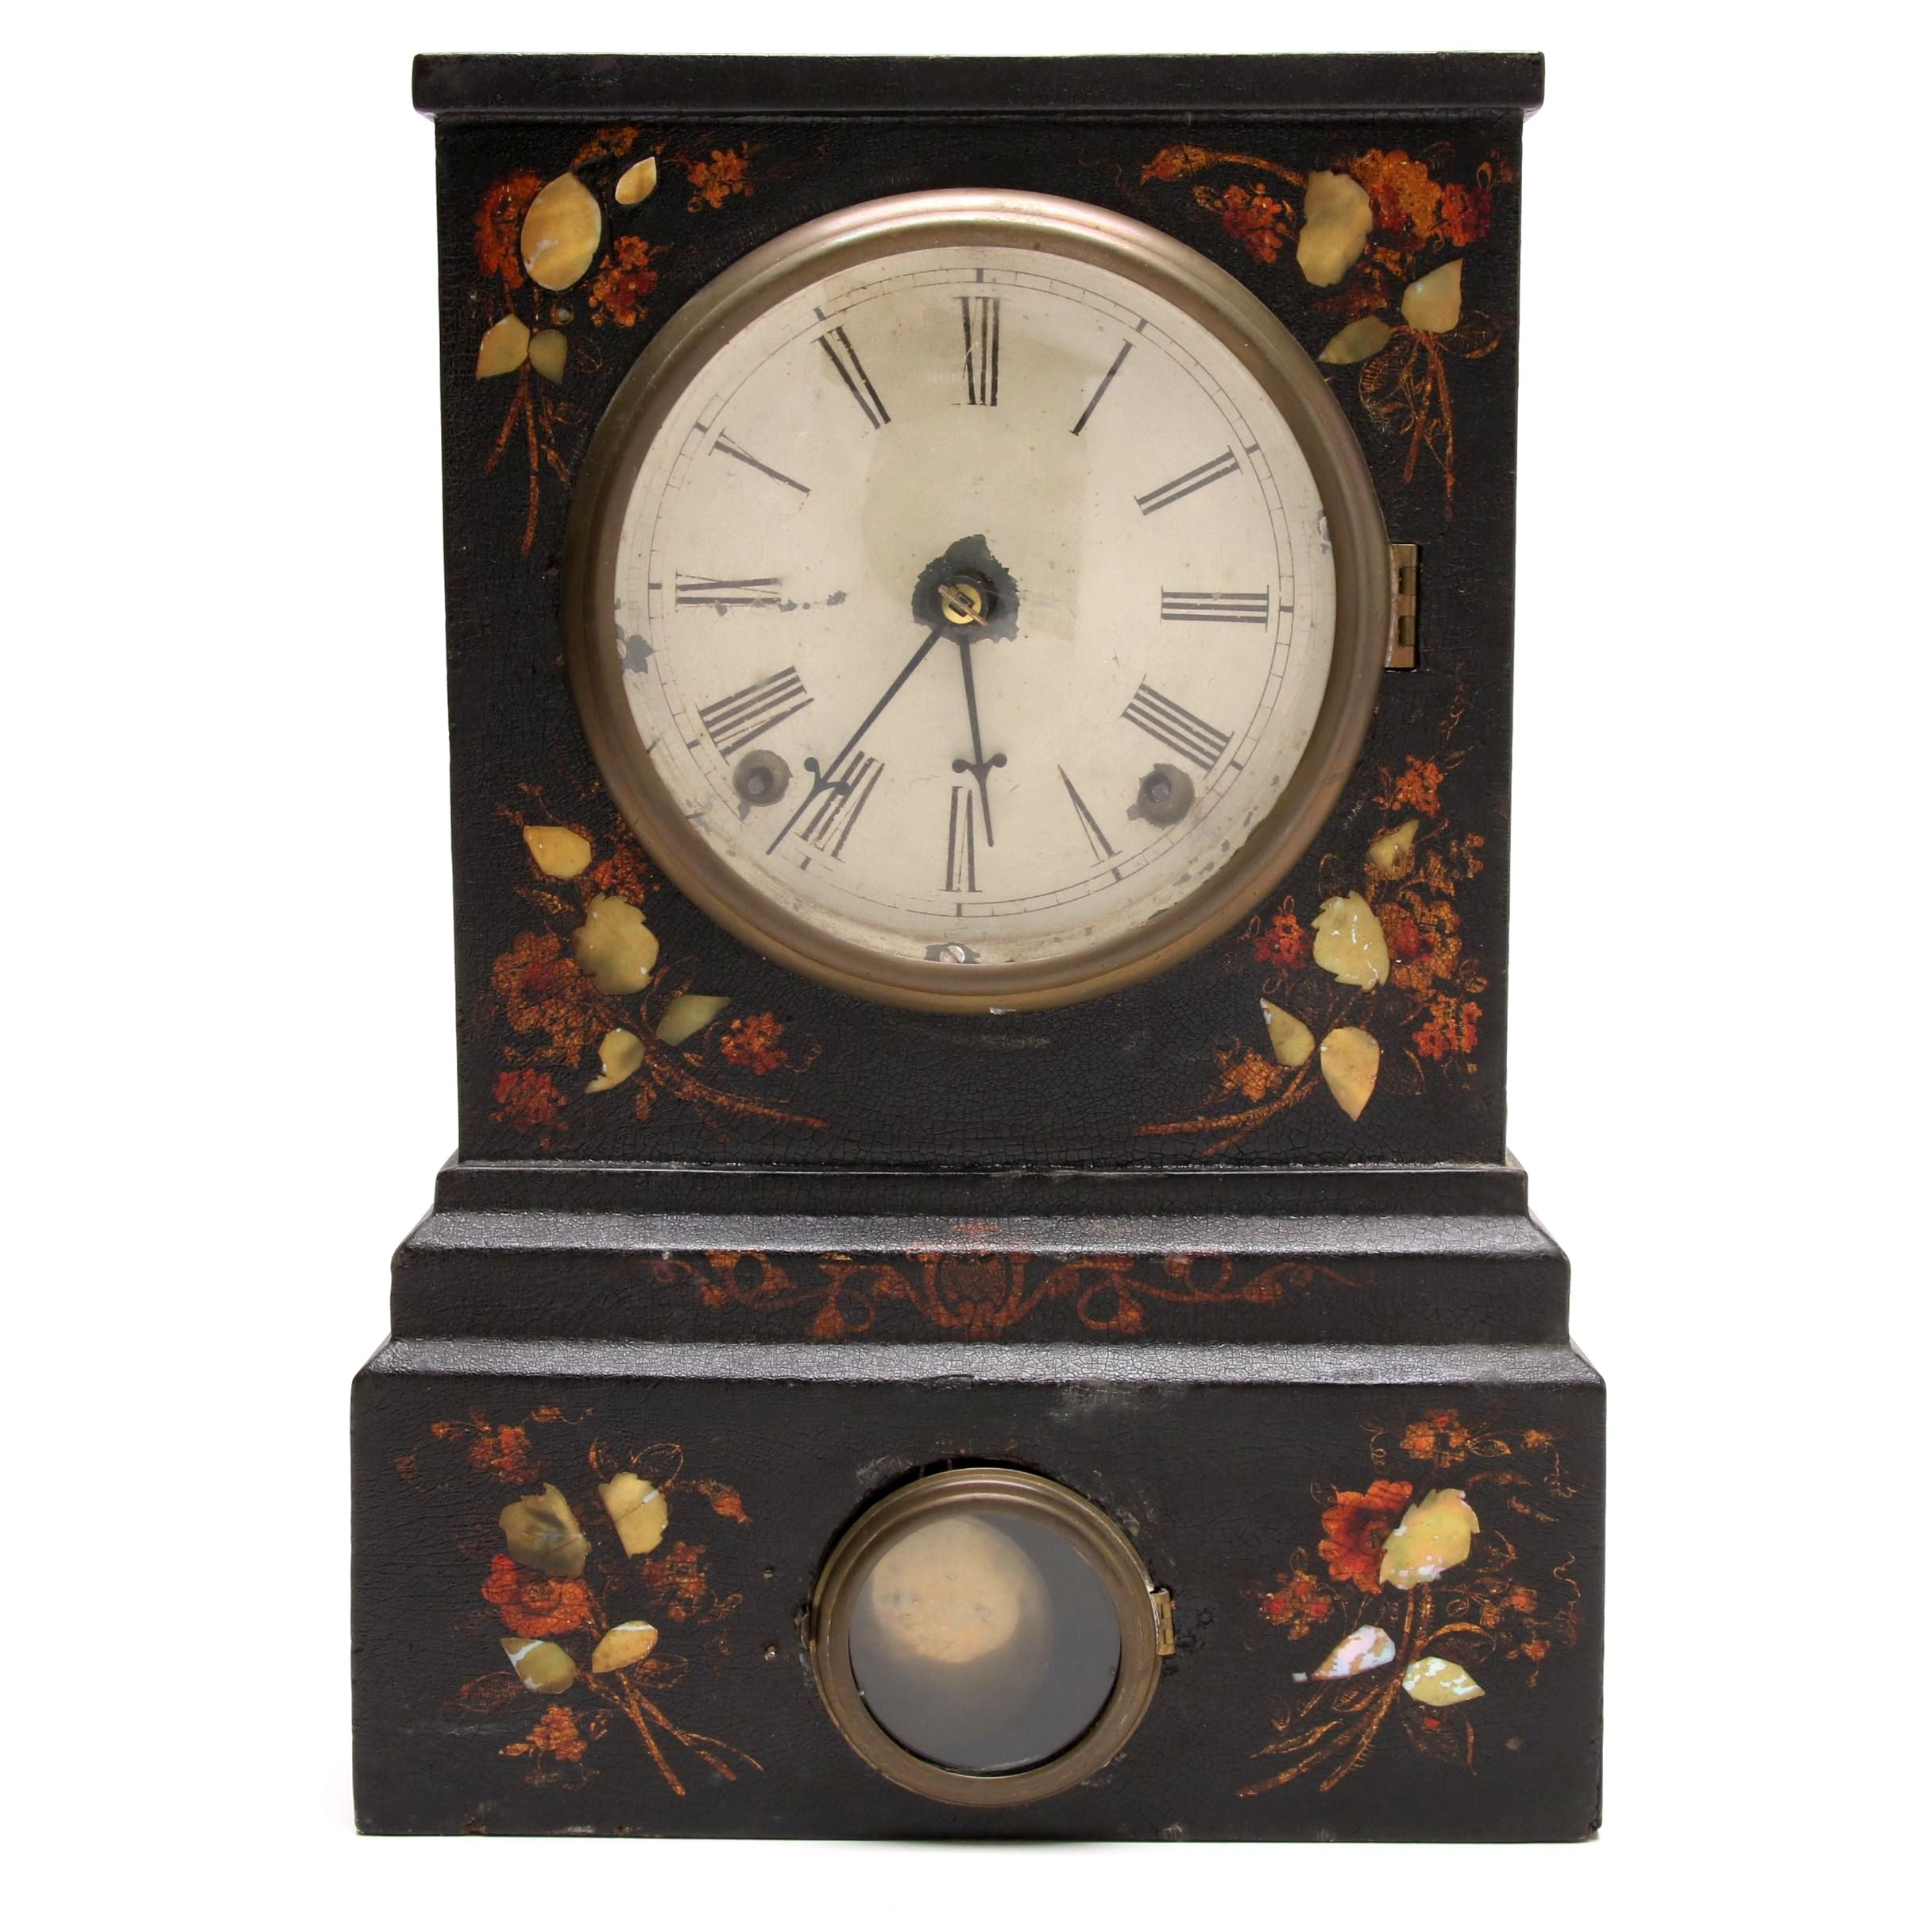 Victorian Papier-mâché and Mother of Pearl Inlaid Shelf Clock, circa 1870